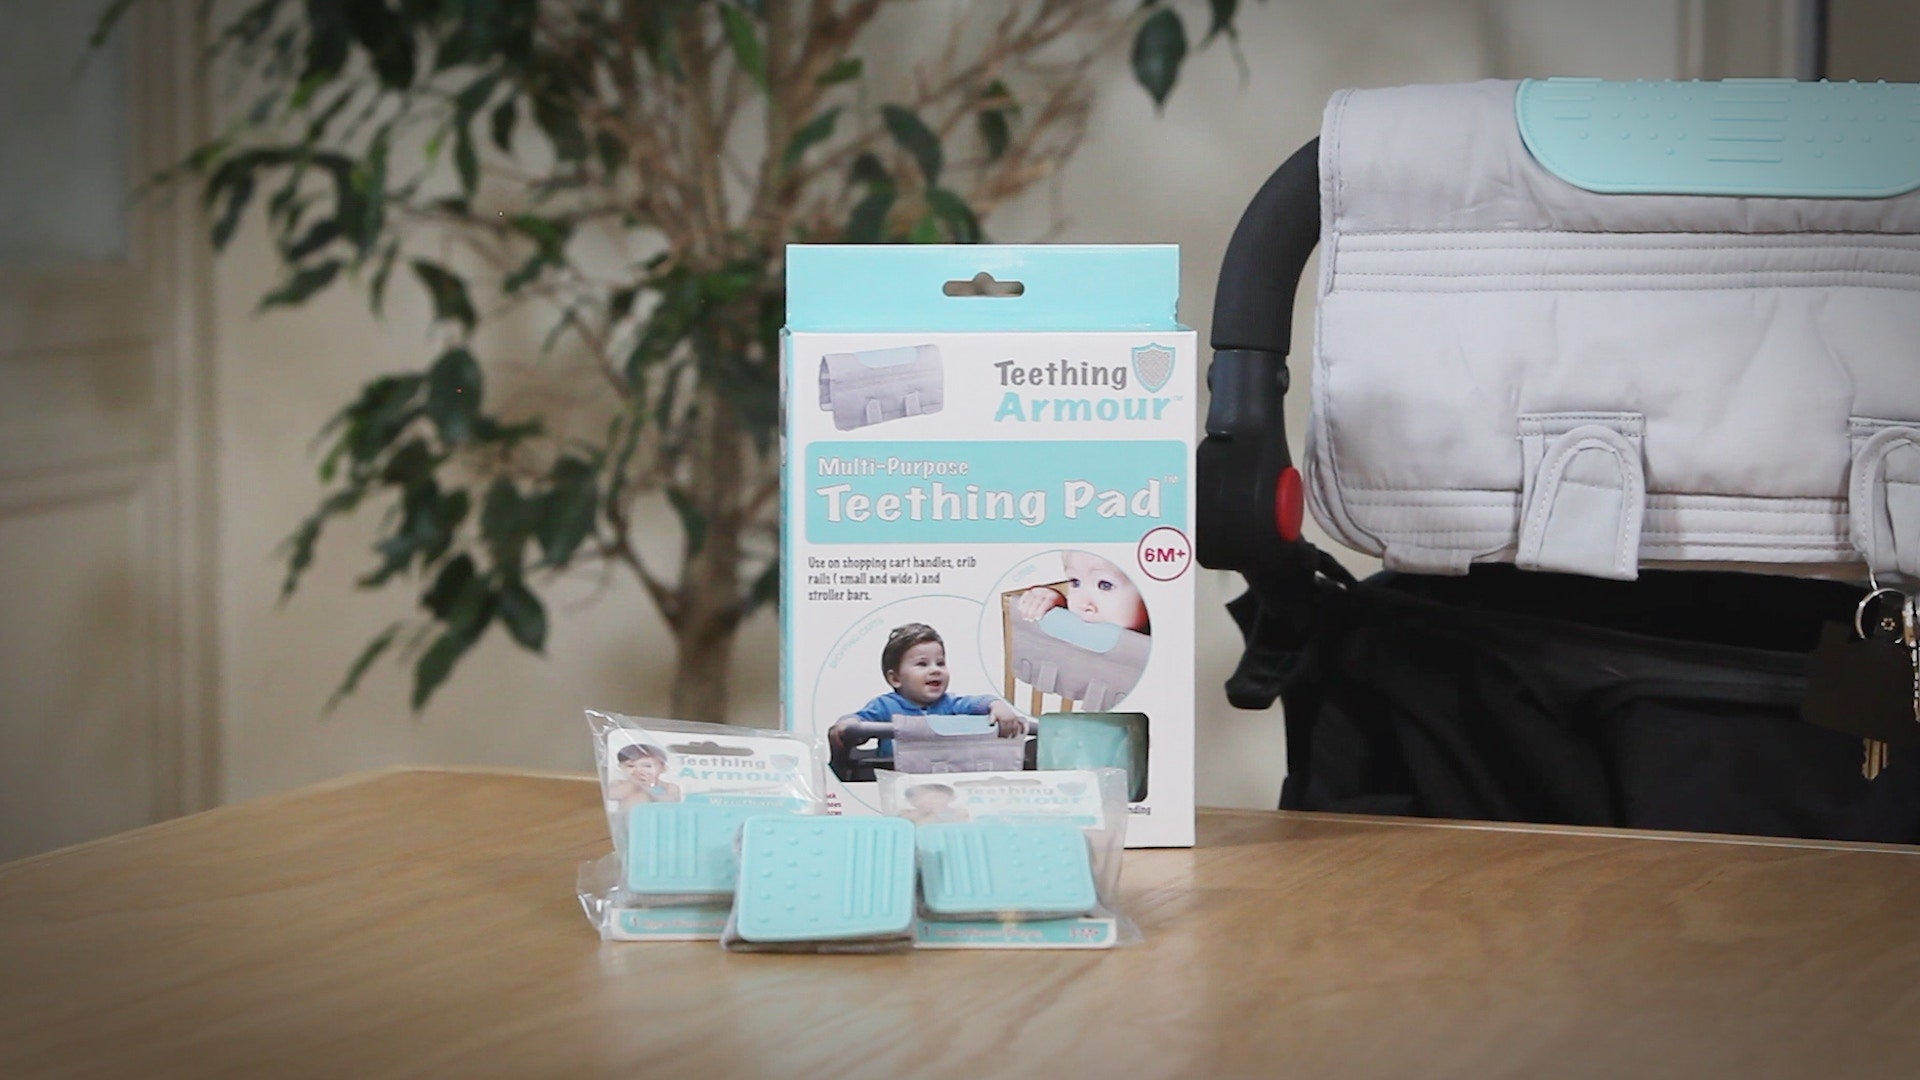 Comercial of teething pad